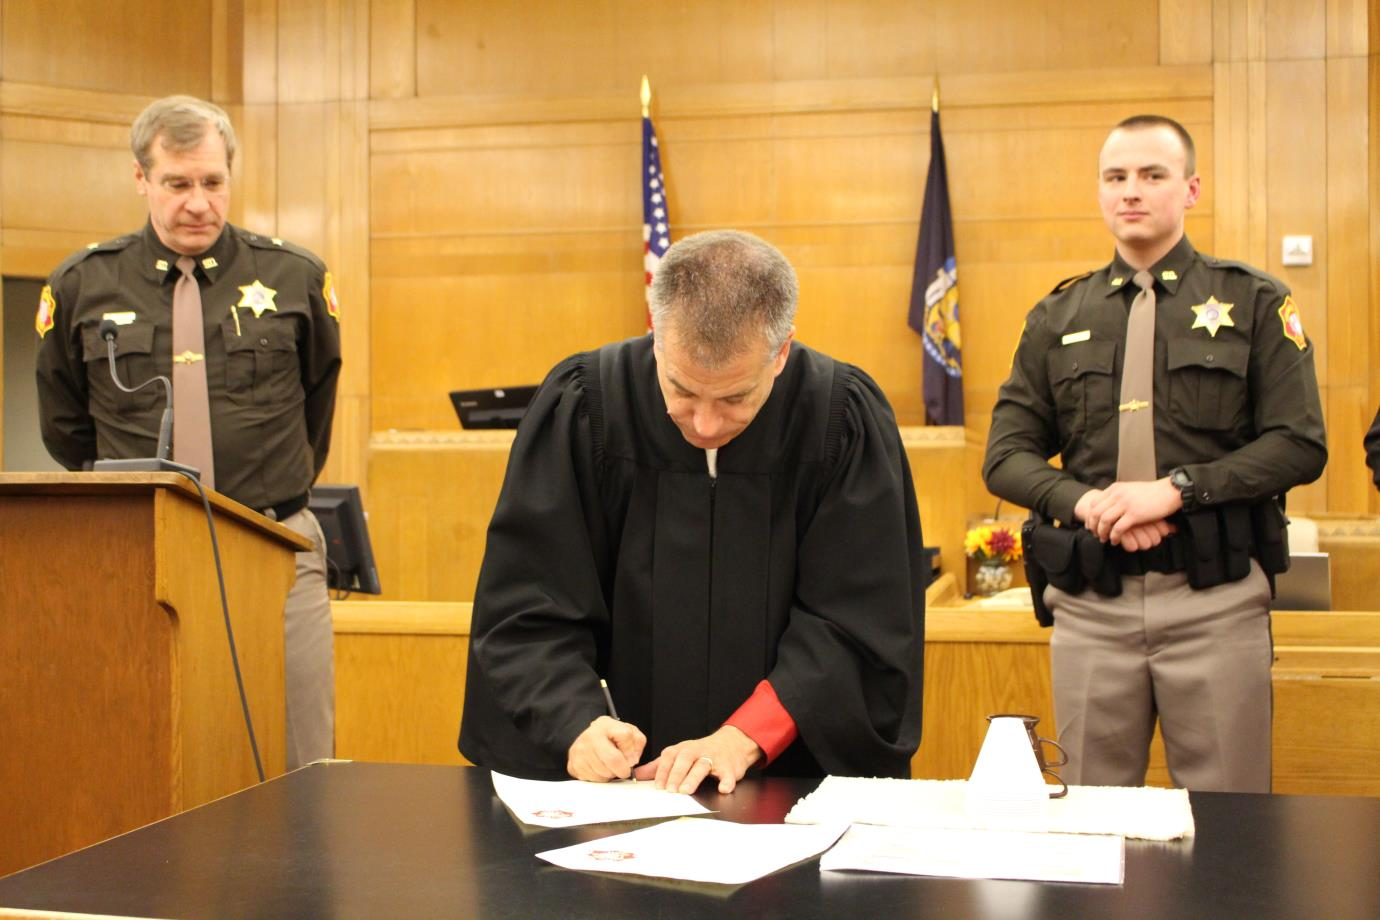 Signing documents in the courtroom